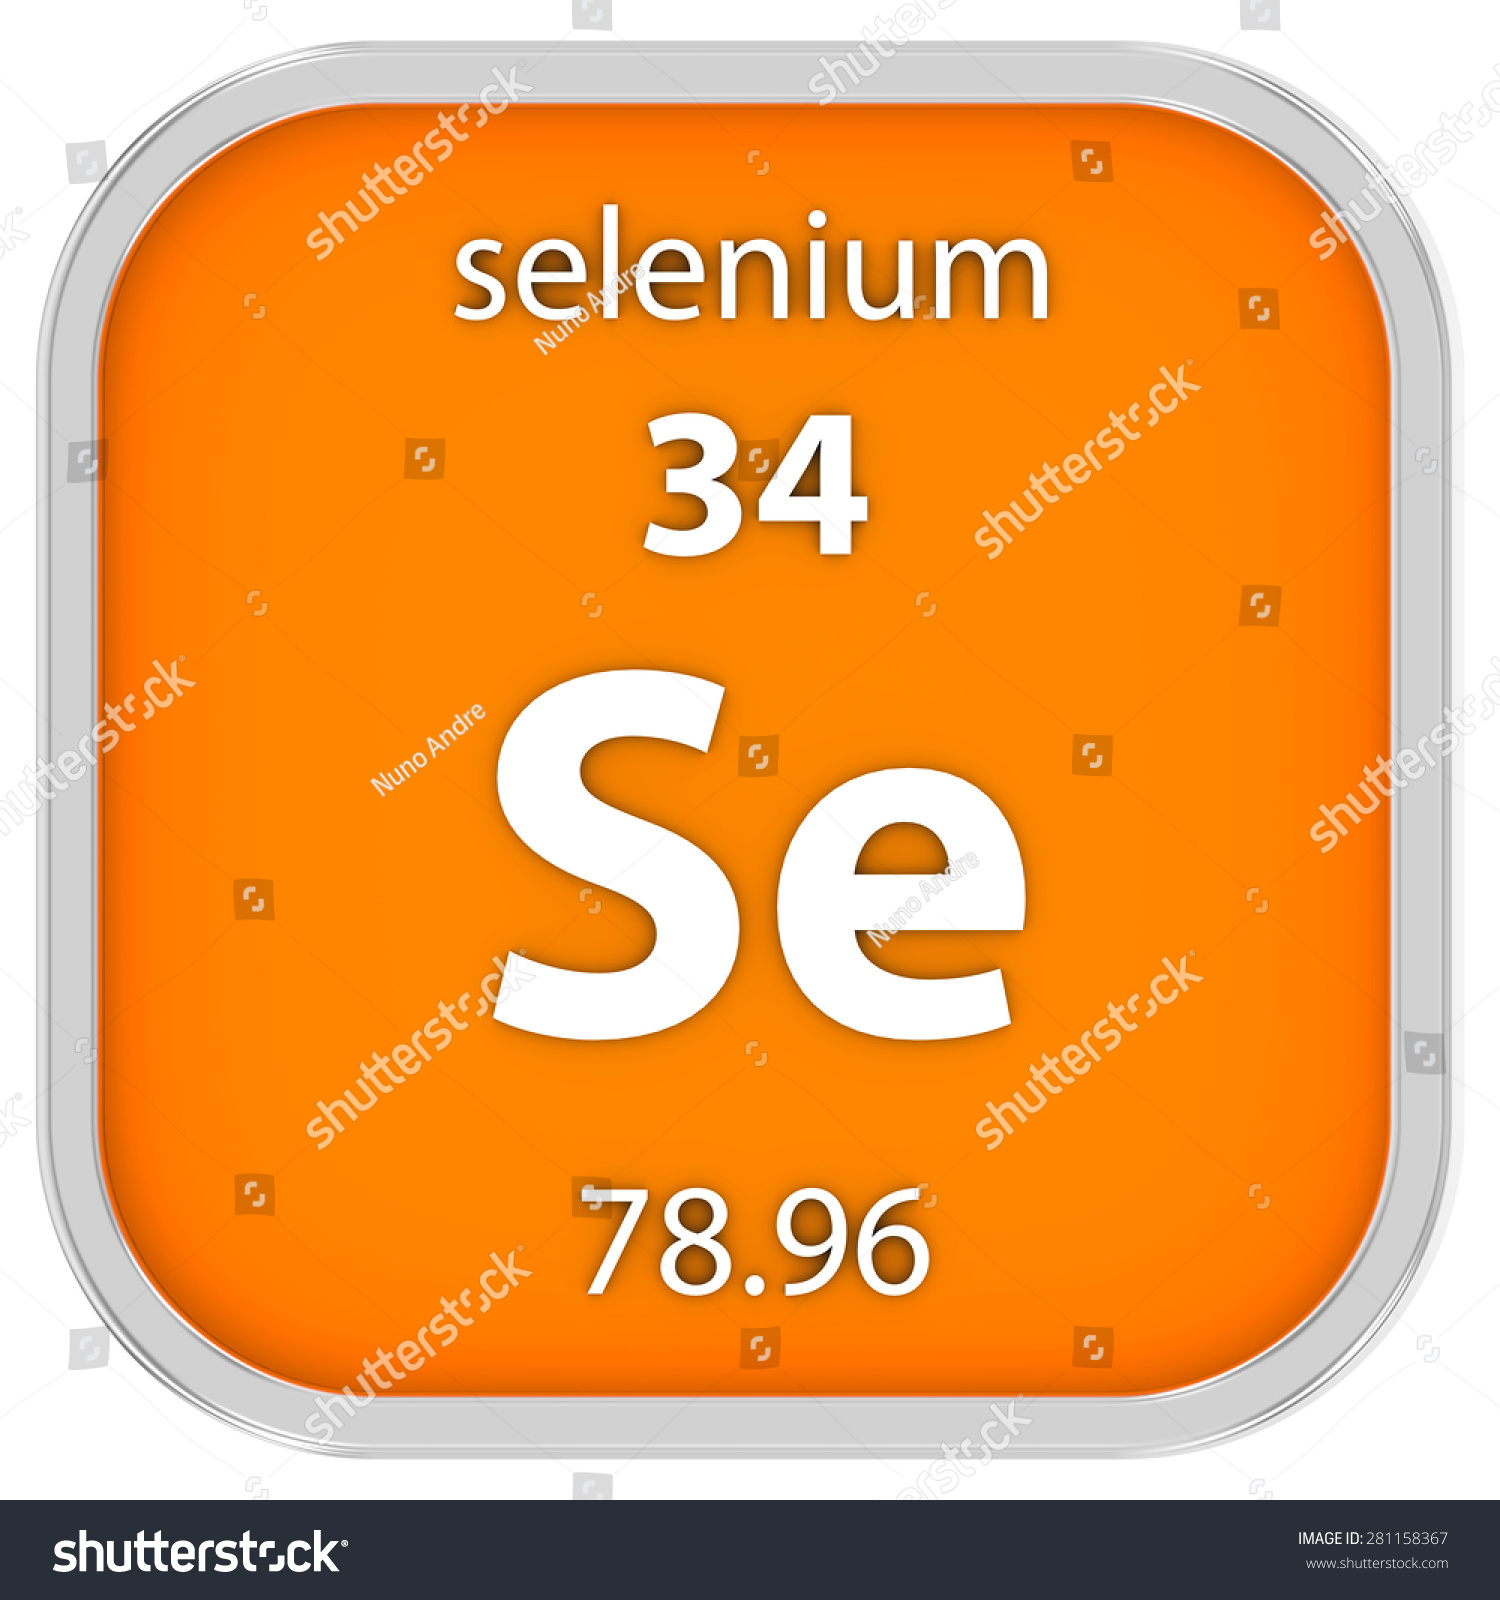 Selenium on periodic table image collections periodic table images periodic table selenium choice image periodic table images selenium on the periodic table gallery periodic table gamestrikefo Images